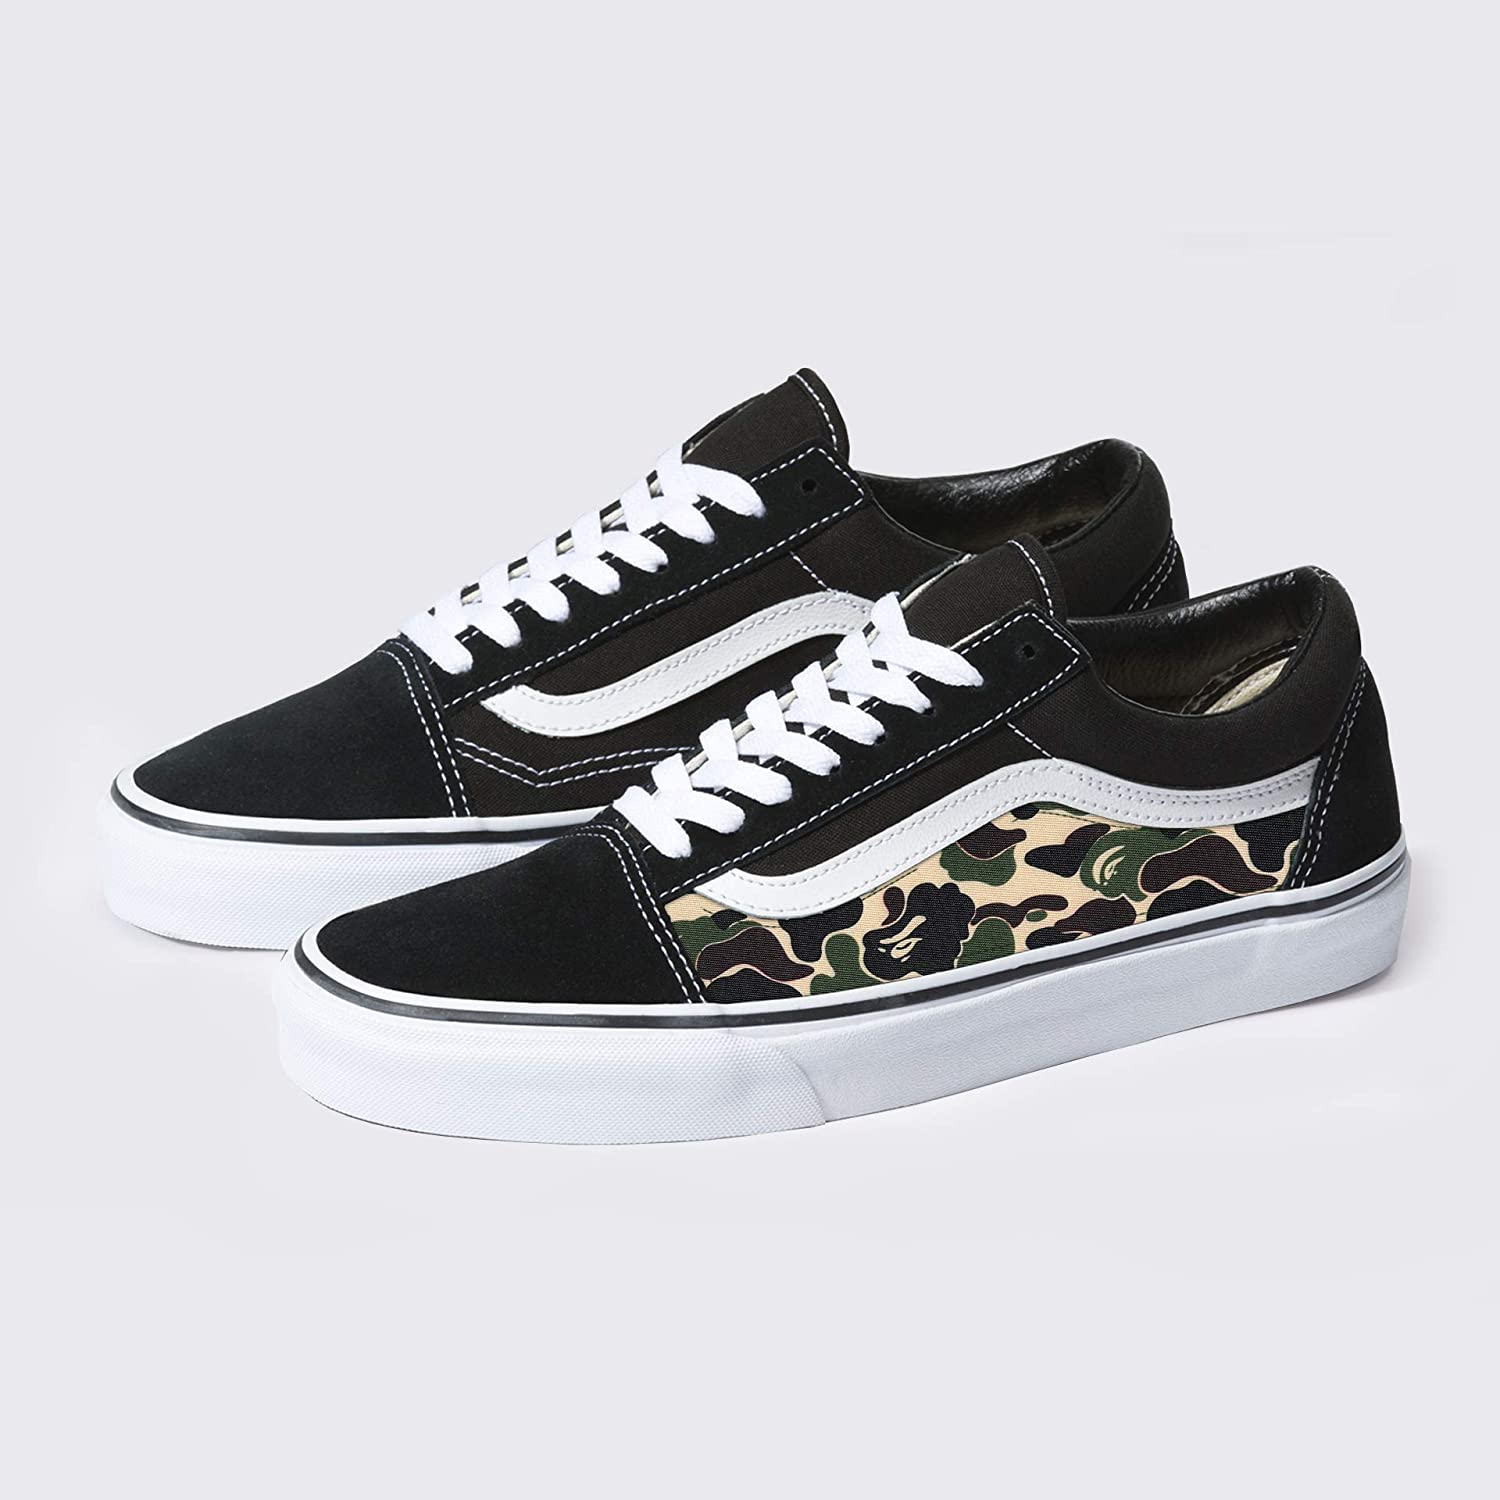 f60fcf303b7 Amazon.com  Vans Old Skool x Bape Camo Custom Handmade Uni-Sex Shoes By  Patch Collection  Handmade